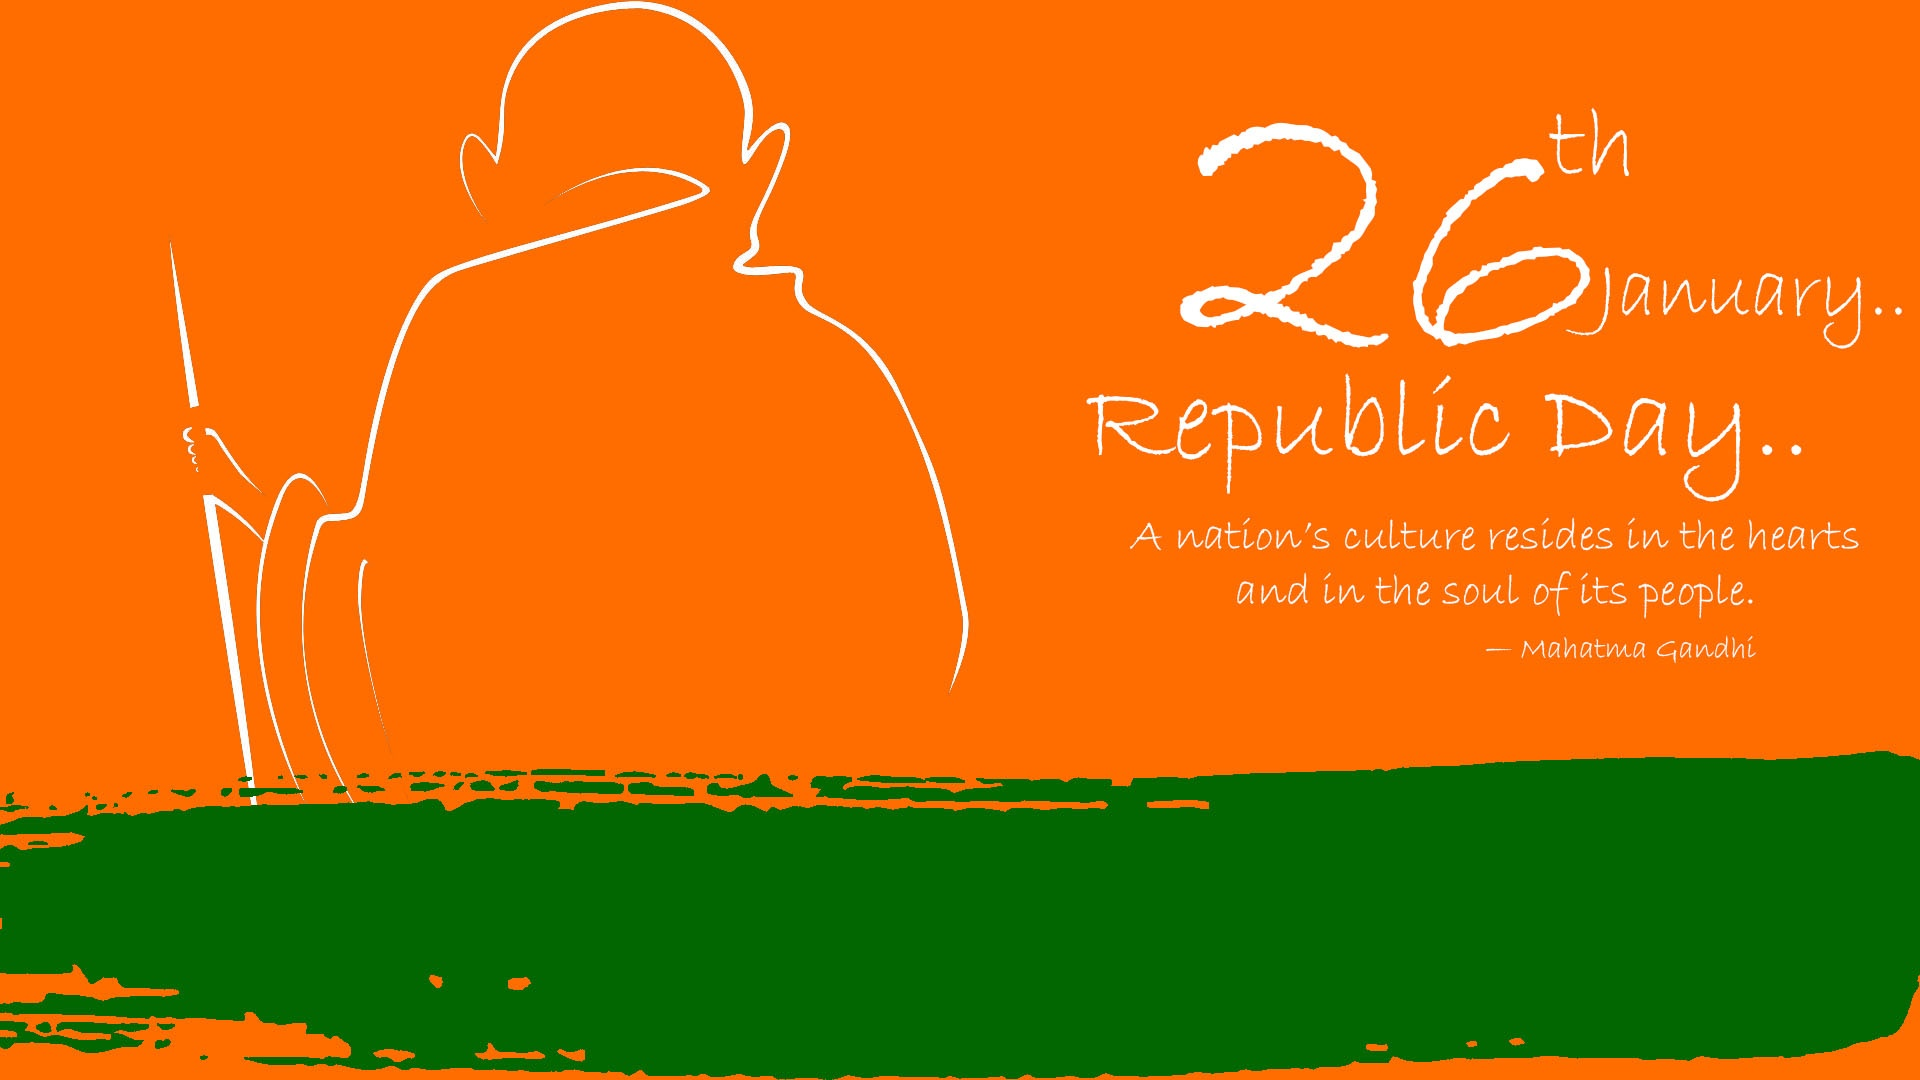 Happy Republic Day 2019 With Mahatma Gandhi Hd Wallpapers